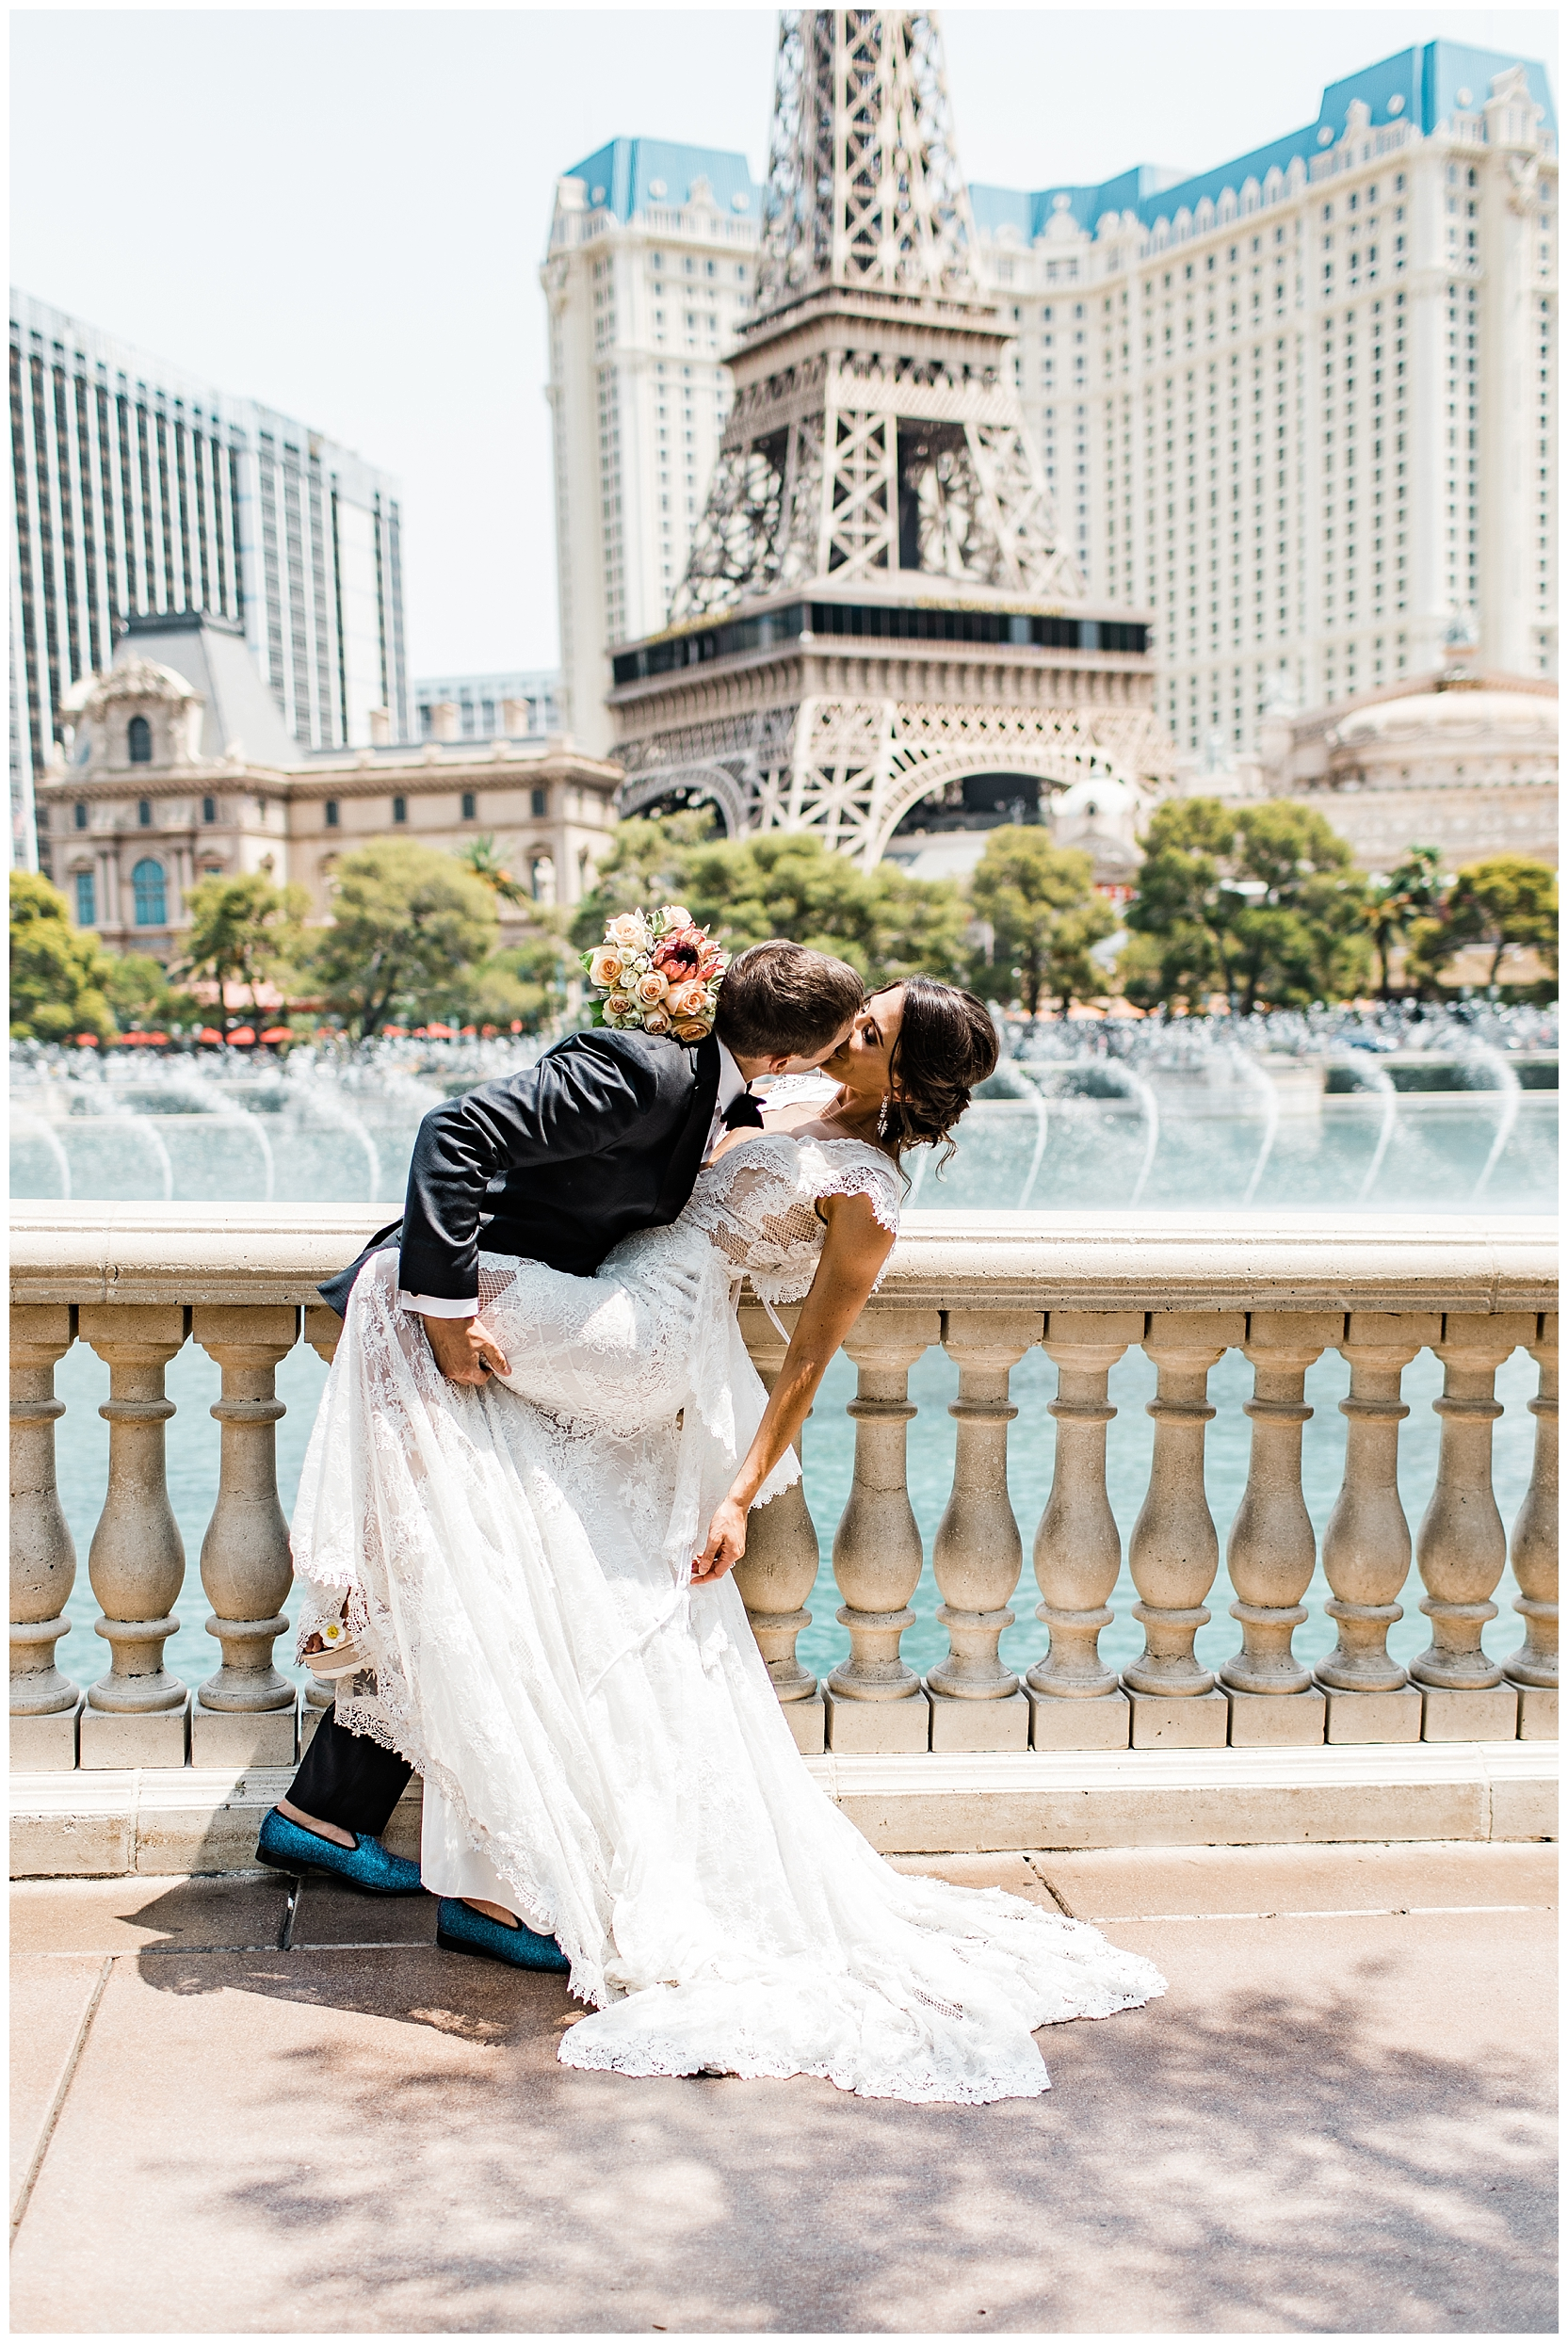 Las Vegas Elopement | Wedding Photos on the Vegas Strip| photo by Lindsey Ramdin, L.A.R. Weddings